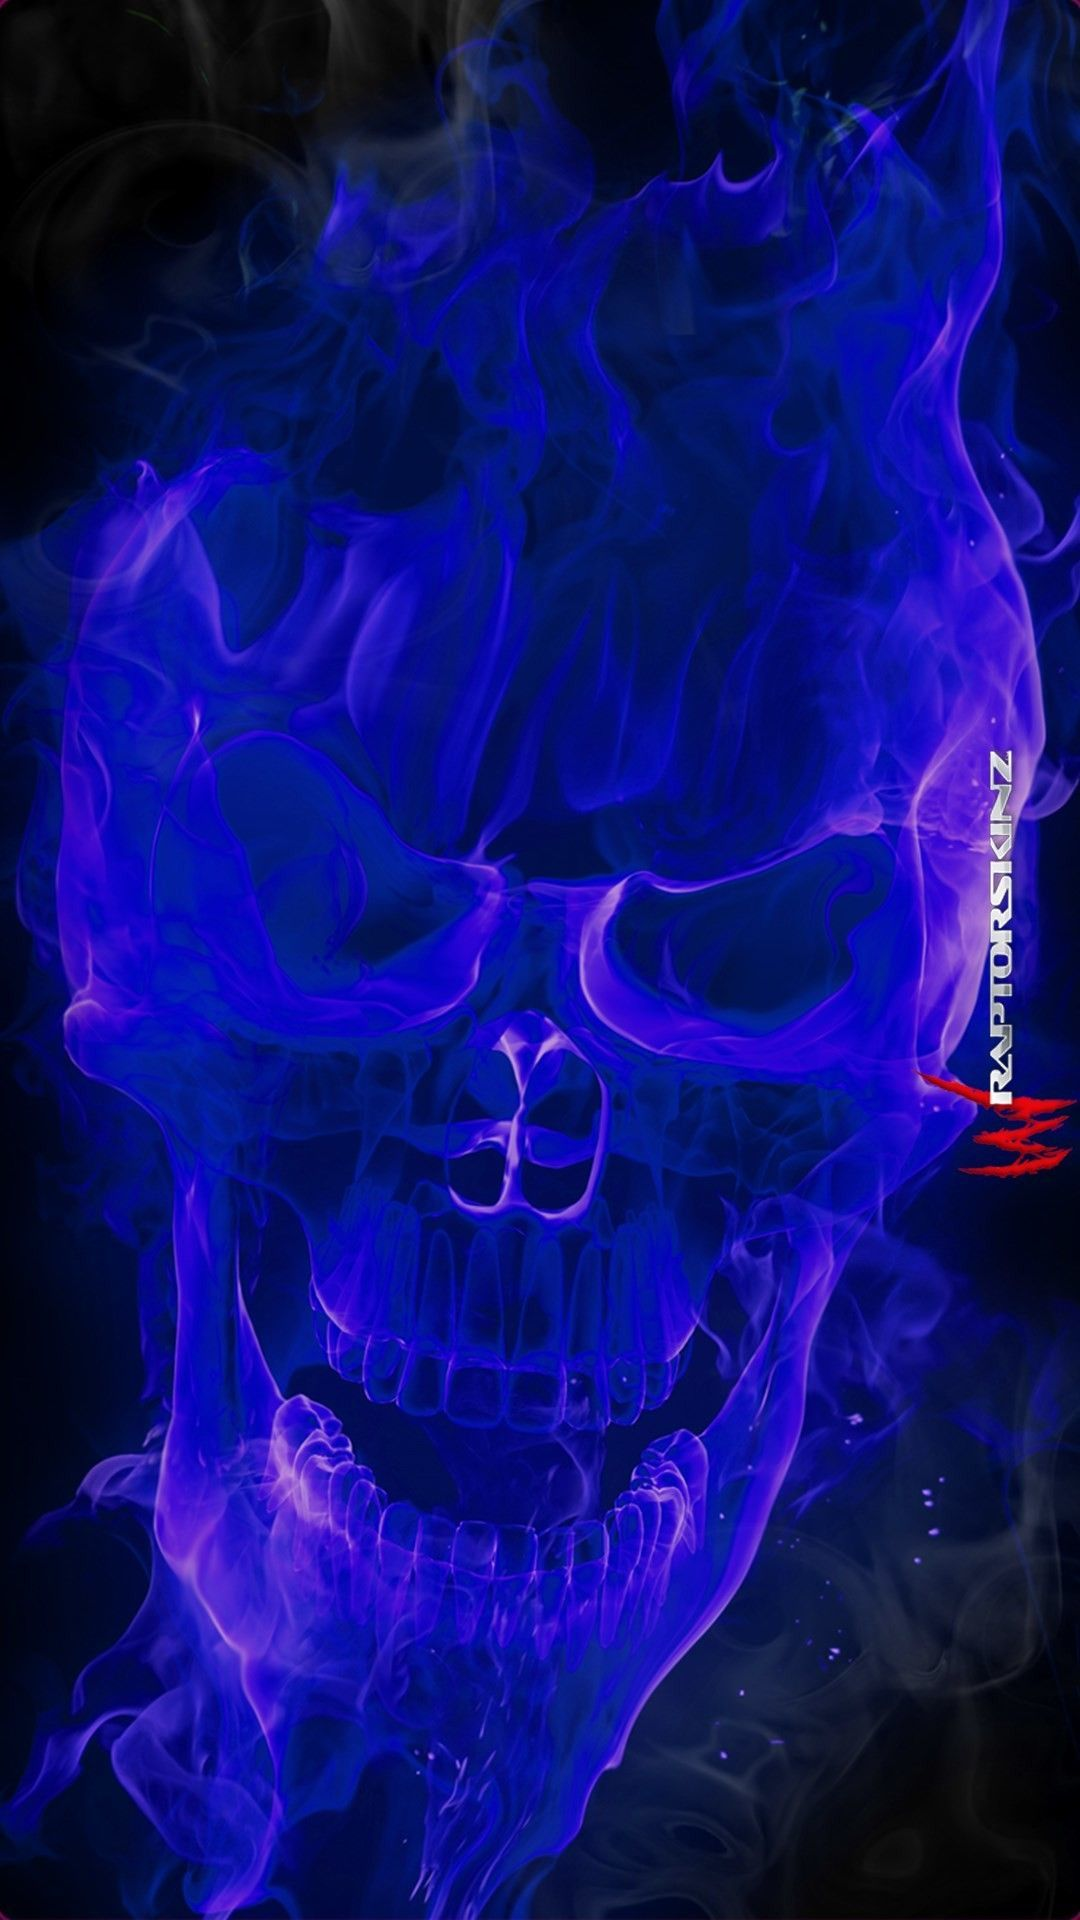 Blue Fire Background Image Snowman Wallpapers Skull Wallpaper Blue Skulls Skulls Drawing